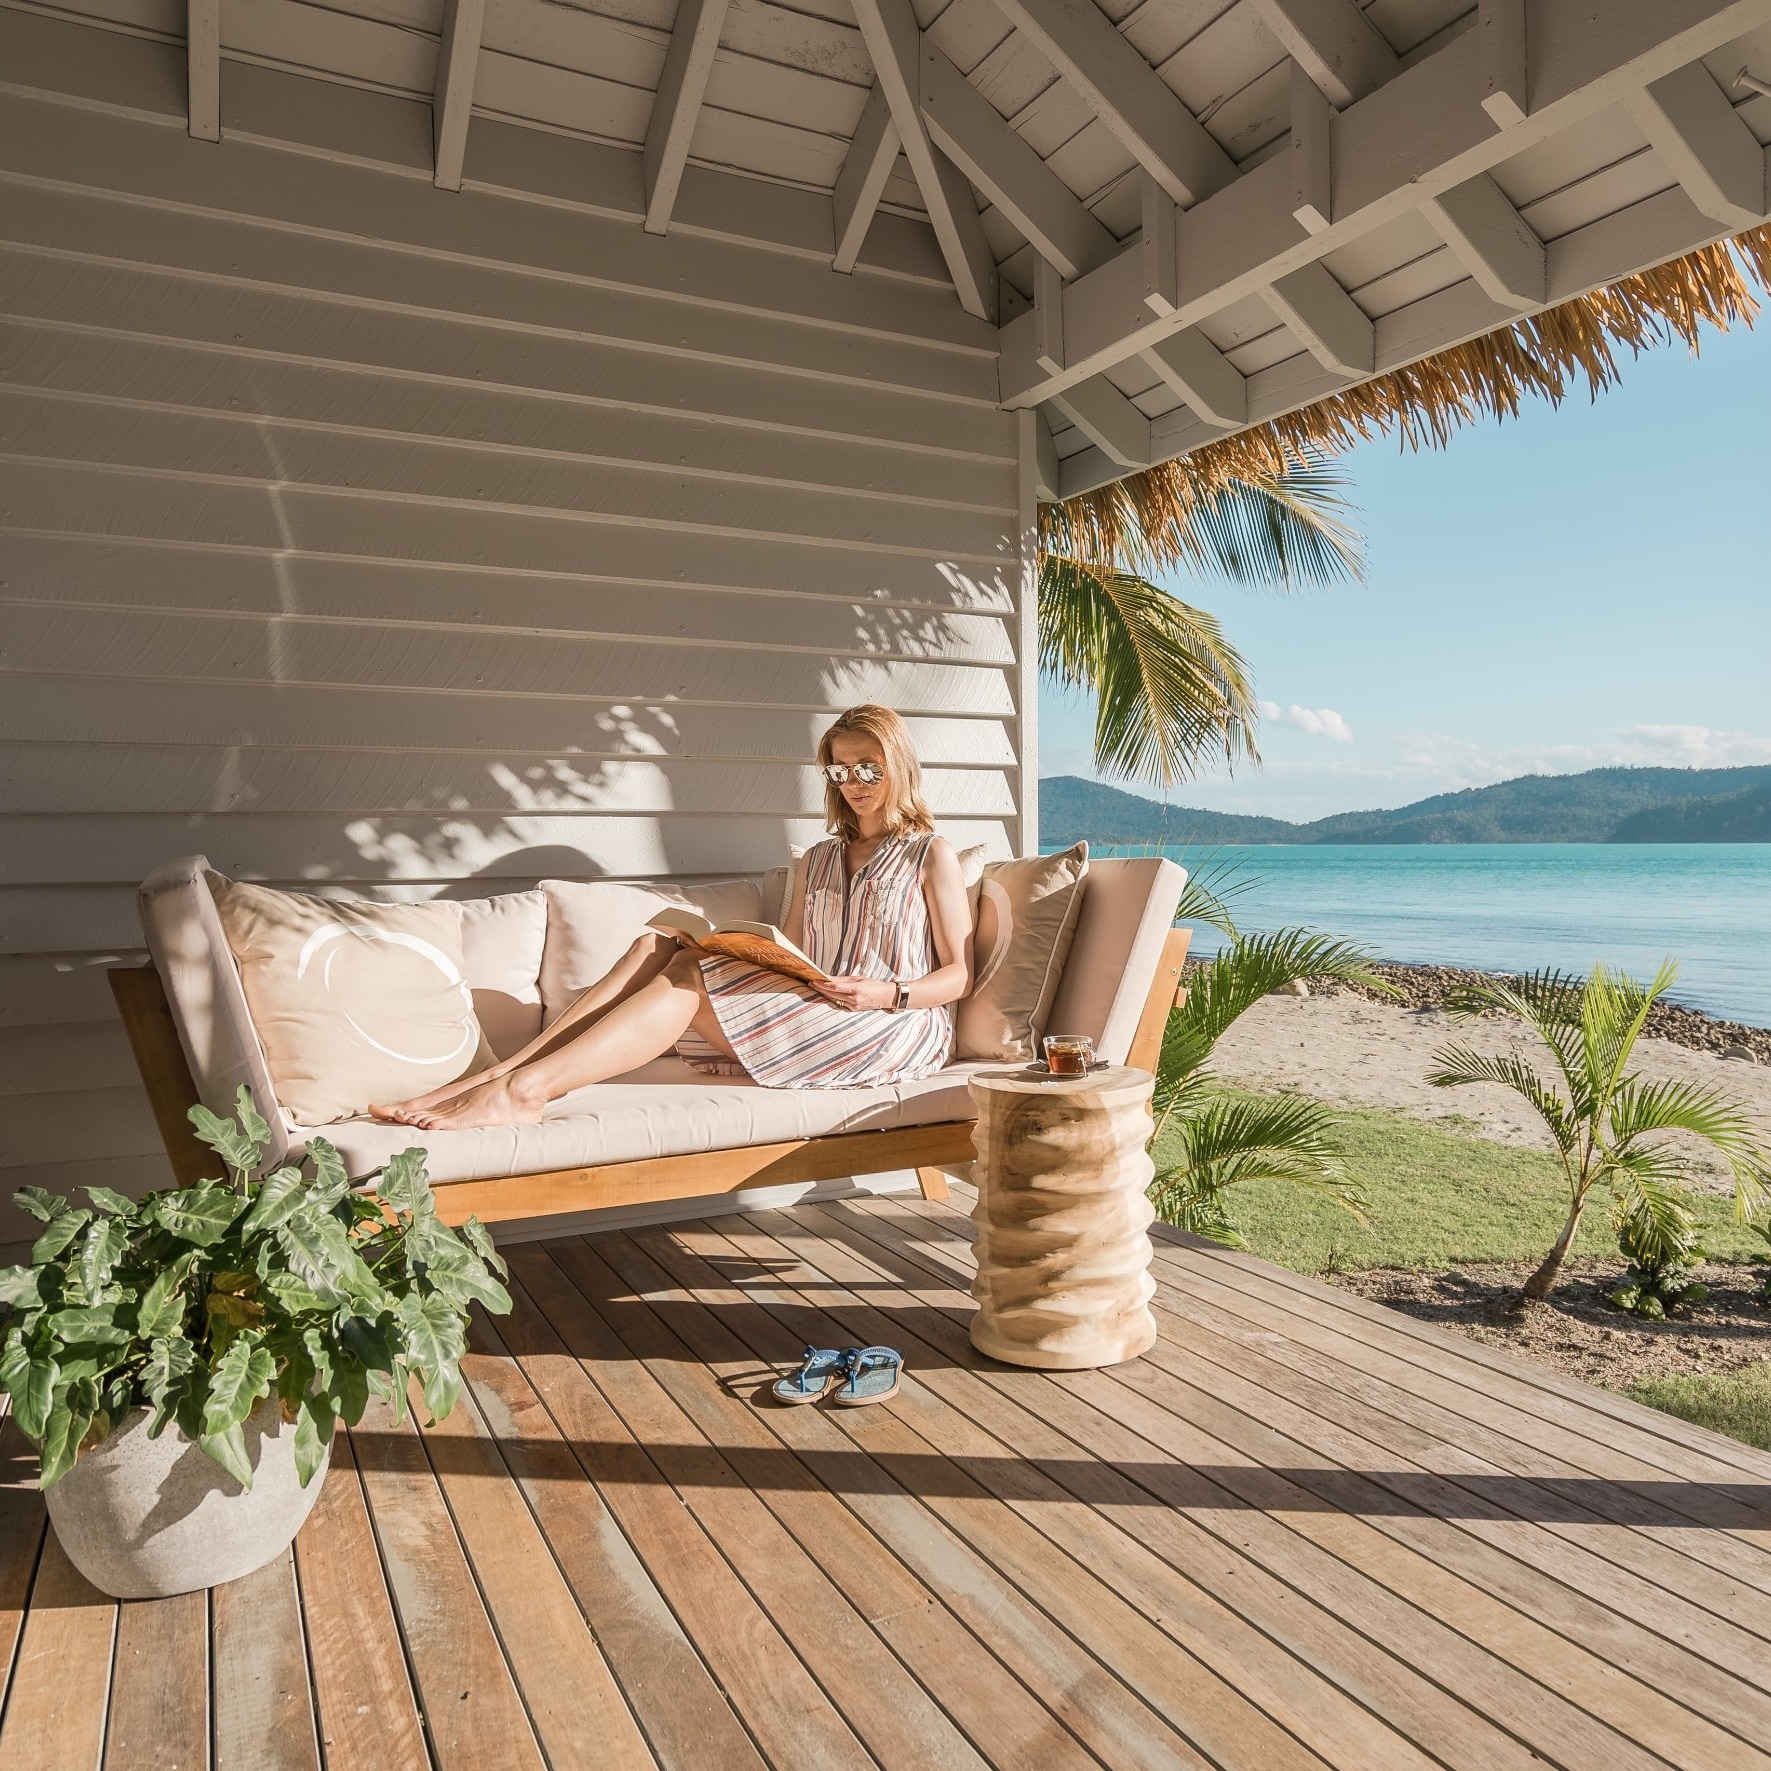 Woman reads book on balcony by ocean at Elysian Retreat © Elysian Retreat/Nathan White